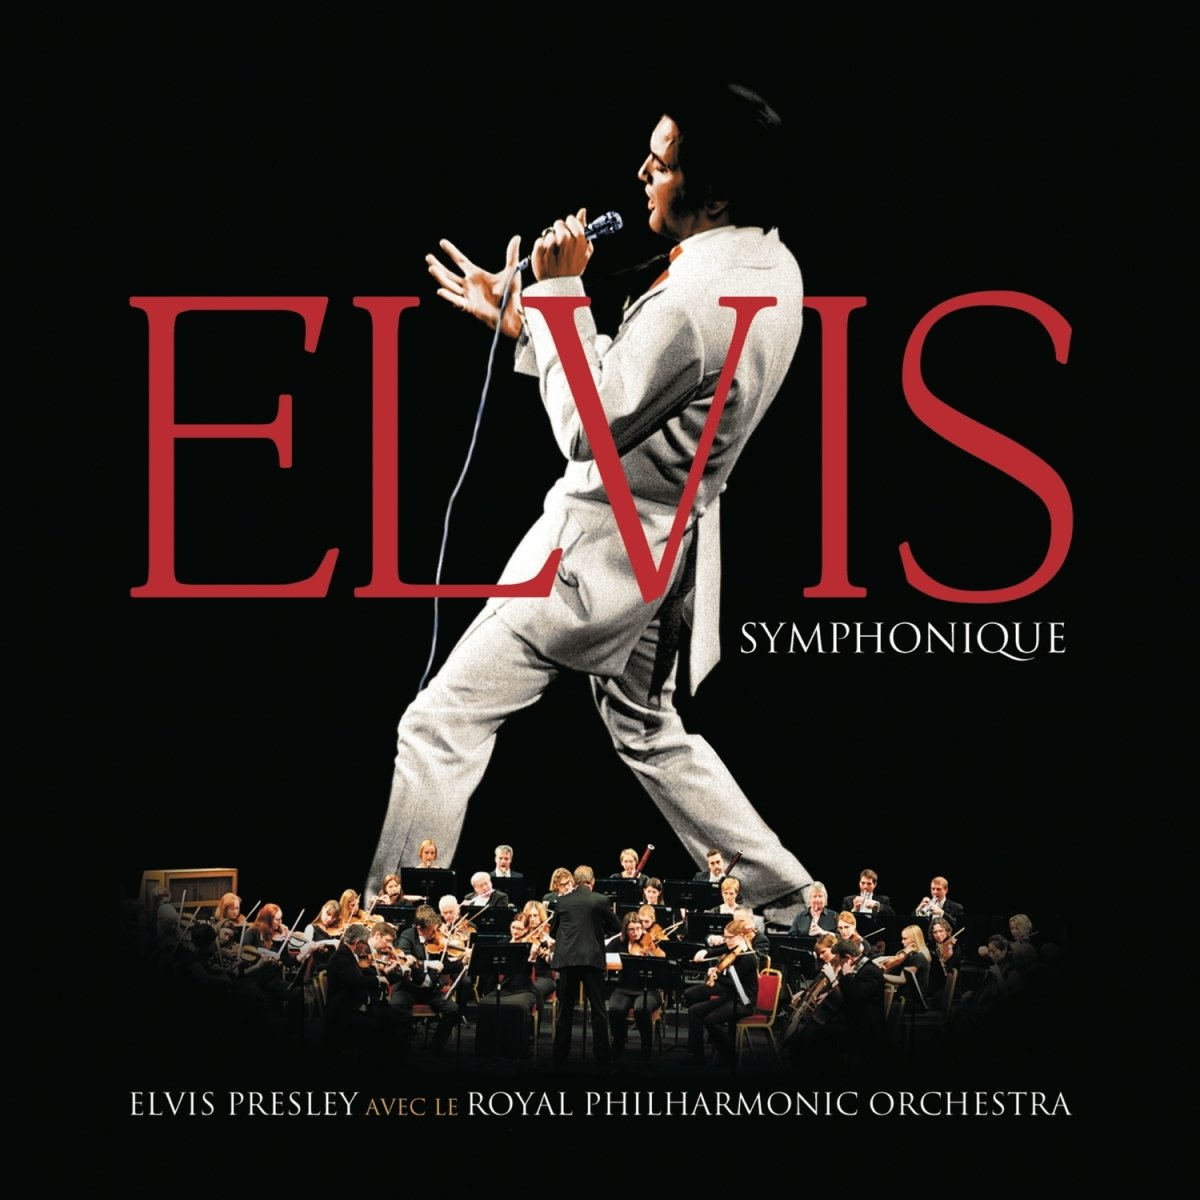 Elvis Presley Avec Le Royal Philharmonic Orchestra - Elvis Symphonique (2017) [FLAC] Download